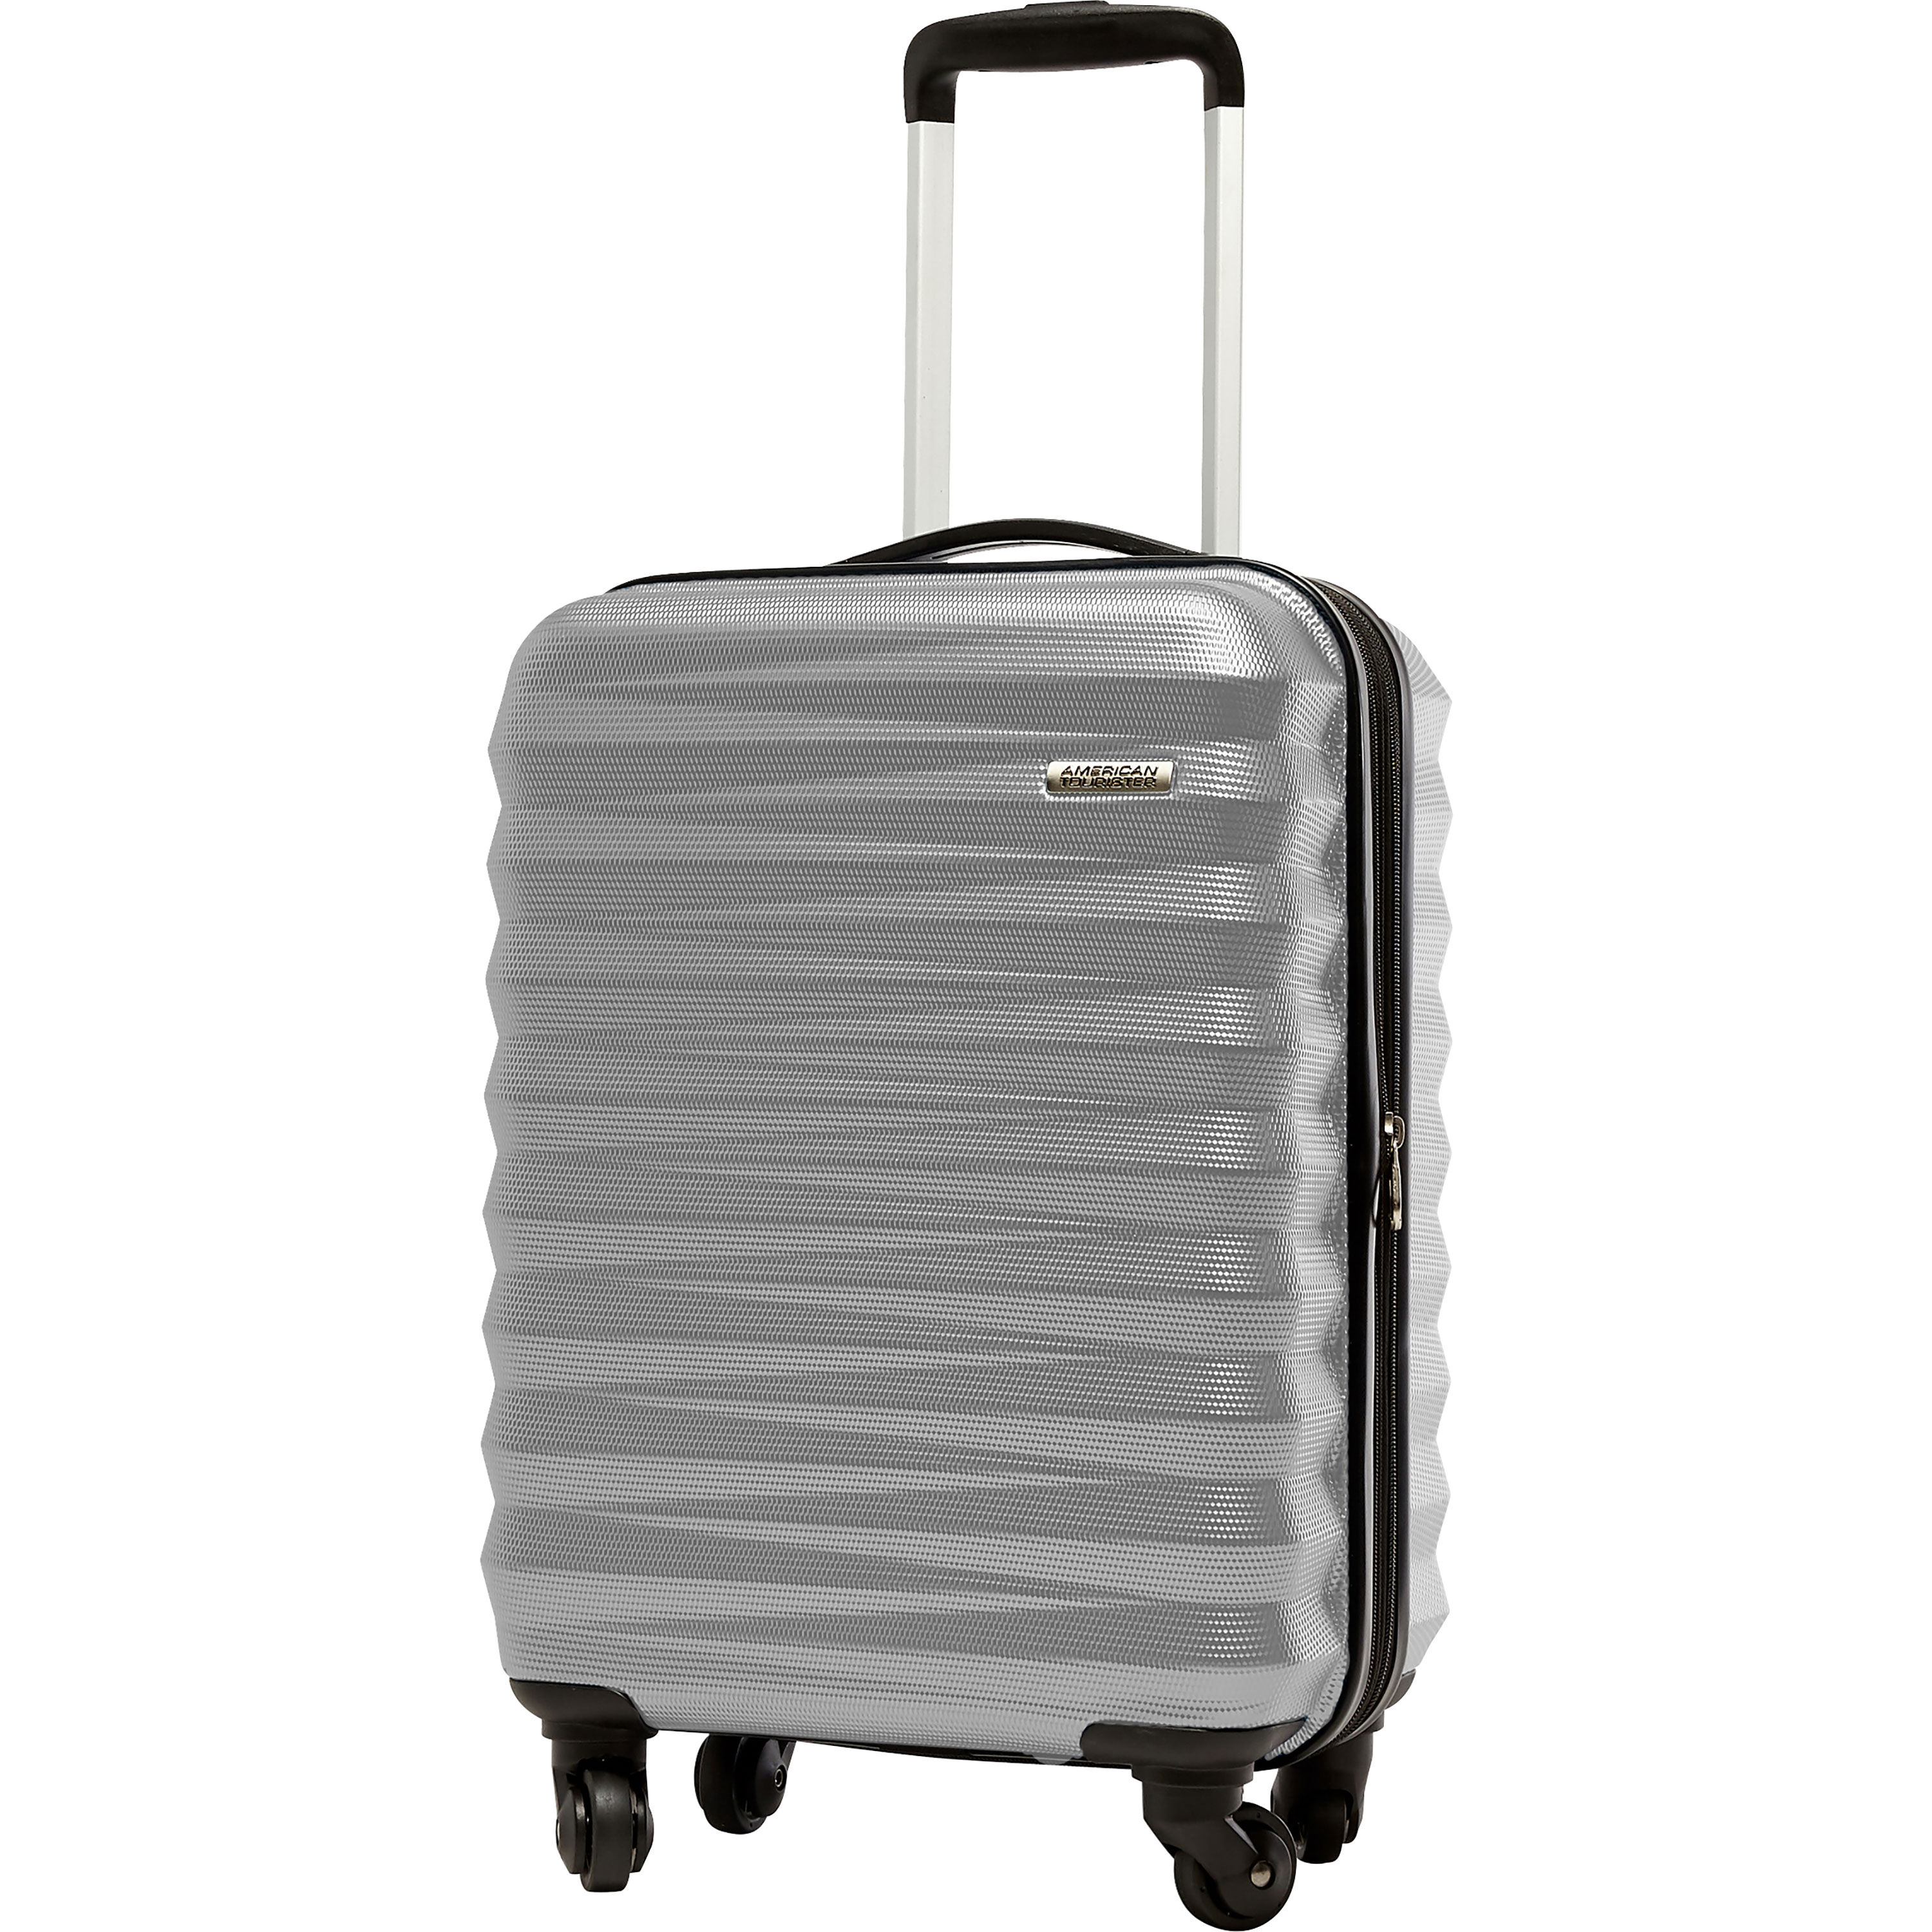 American Tourister Triumph NX 20 Inch Hardside Carry On Spinner